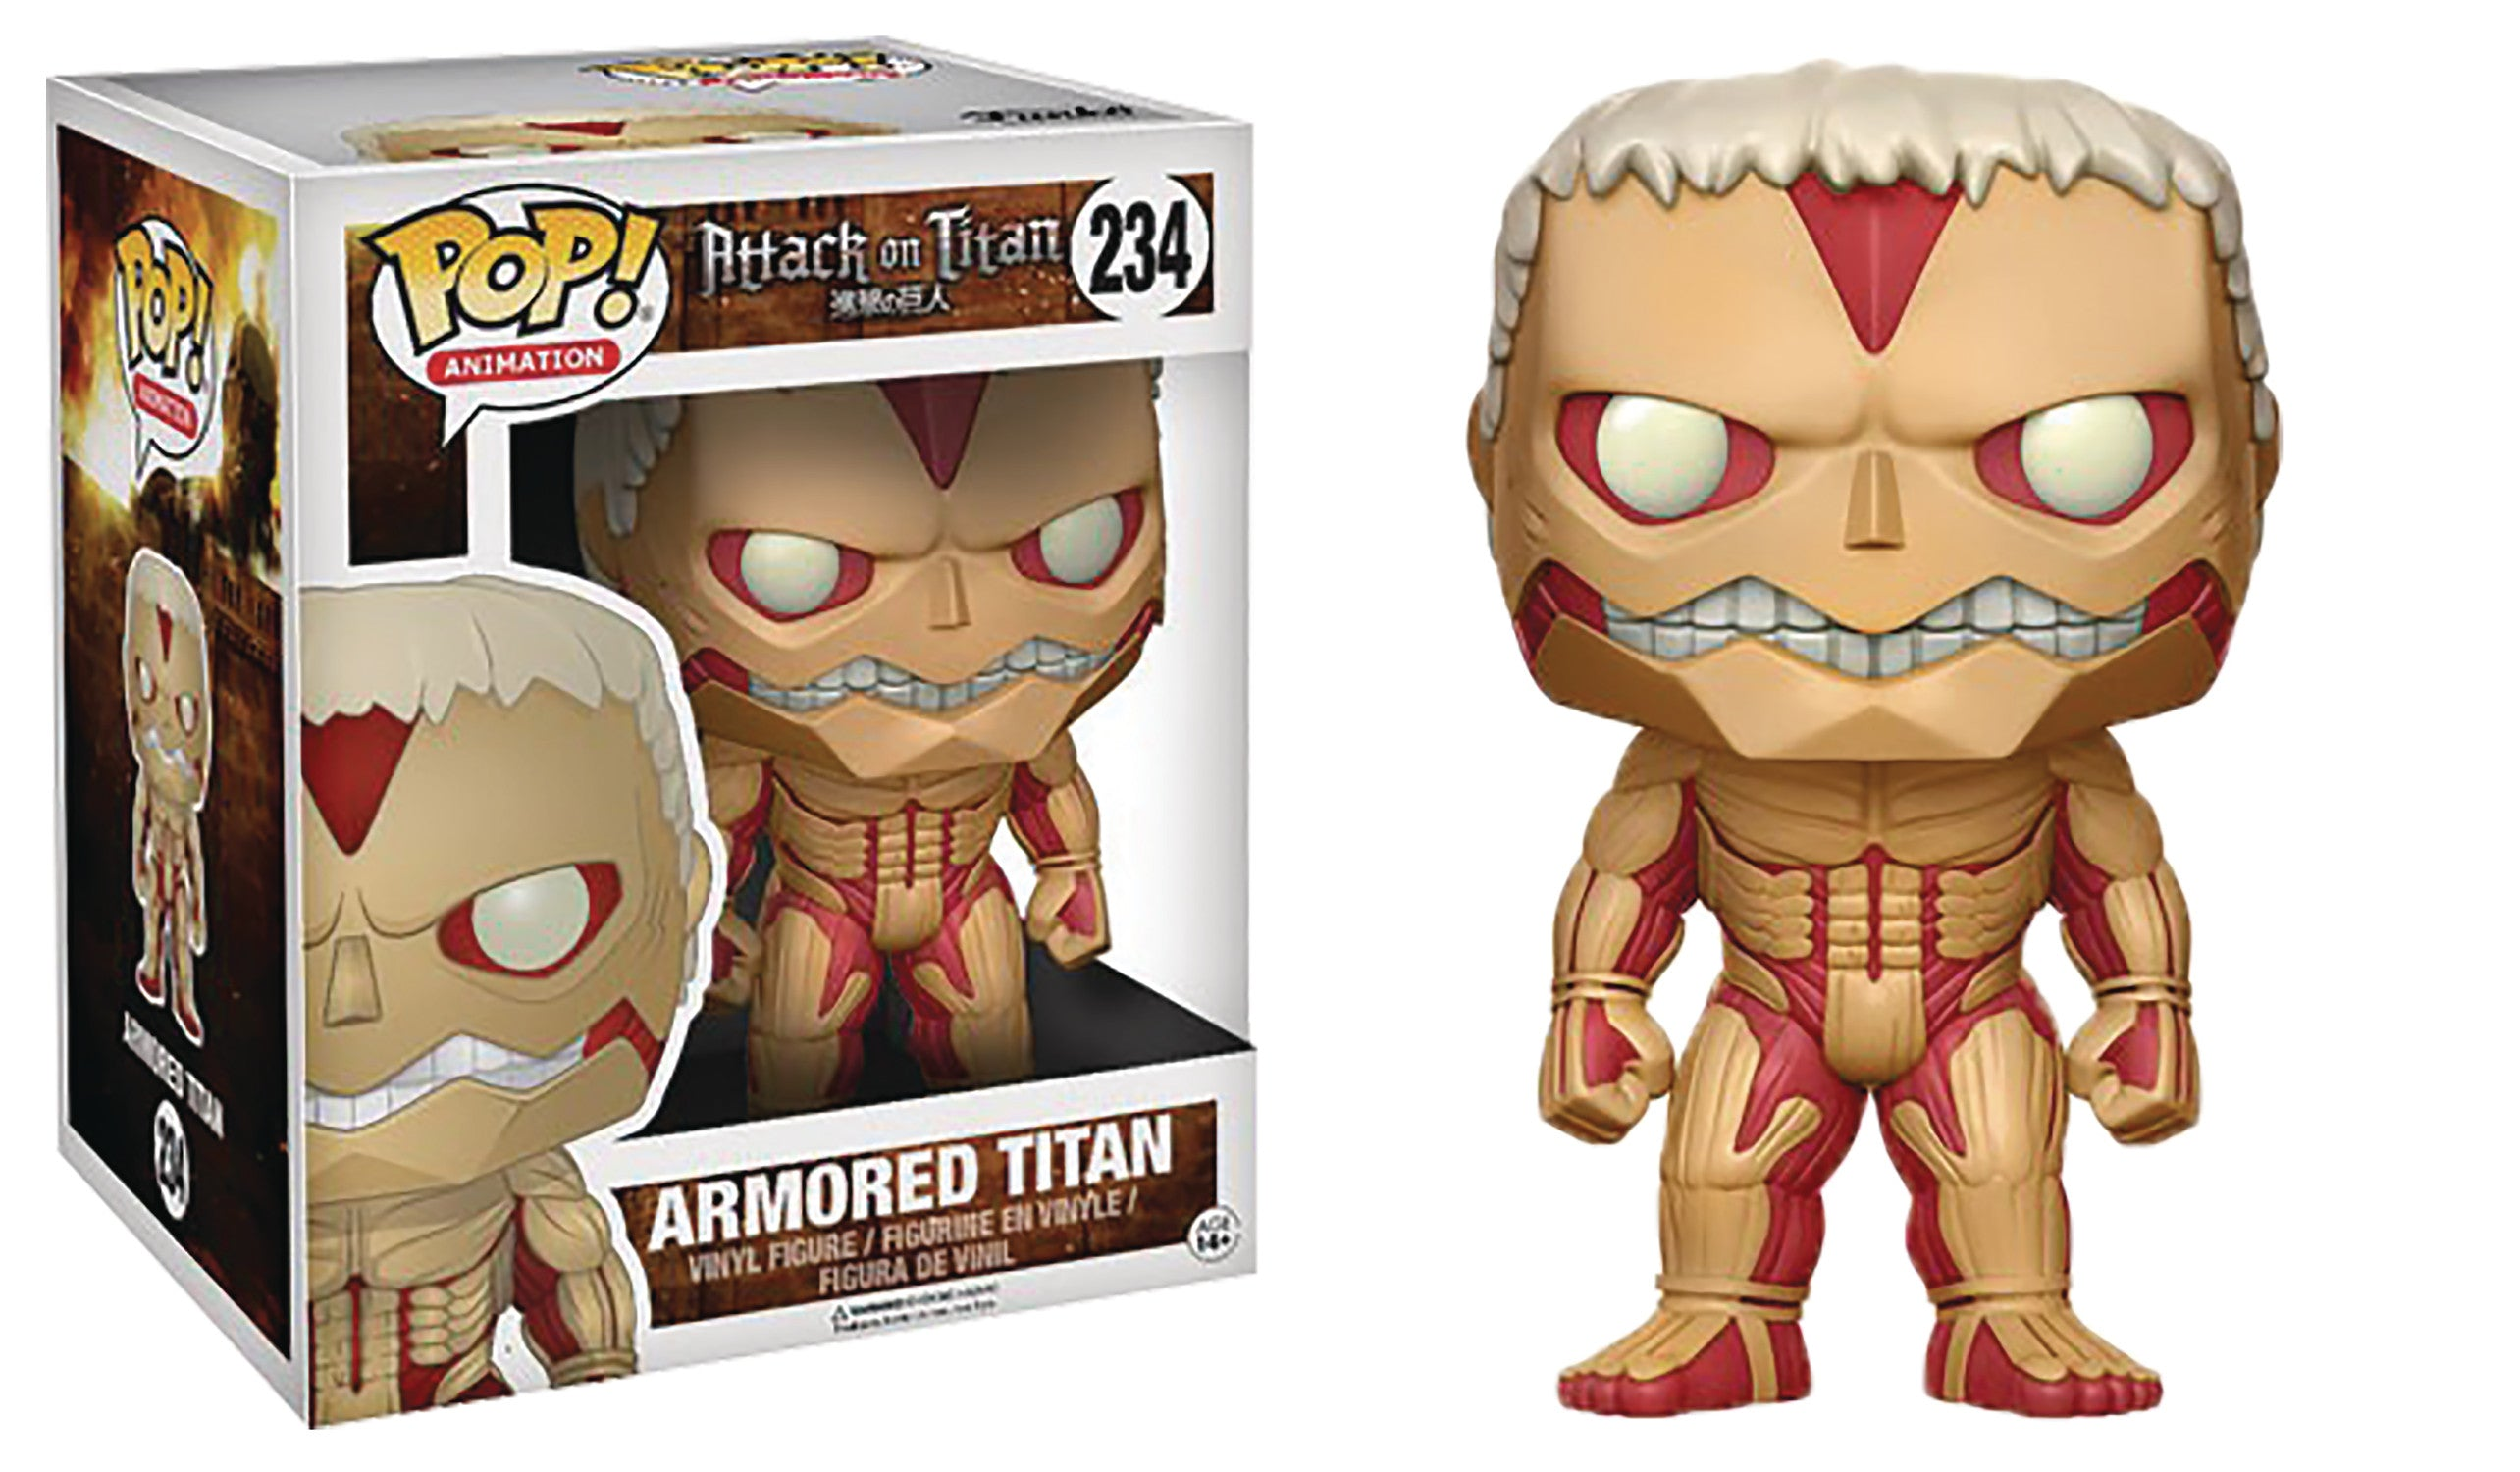 POP ATTACK ON TITAN ARMORED TITAN 6IN VINYL FIG